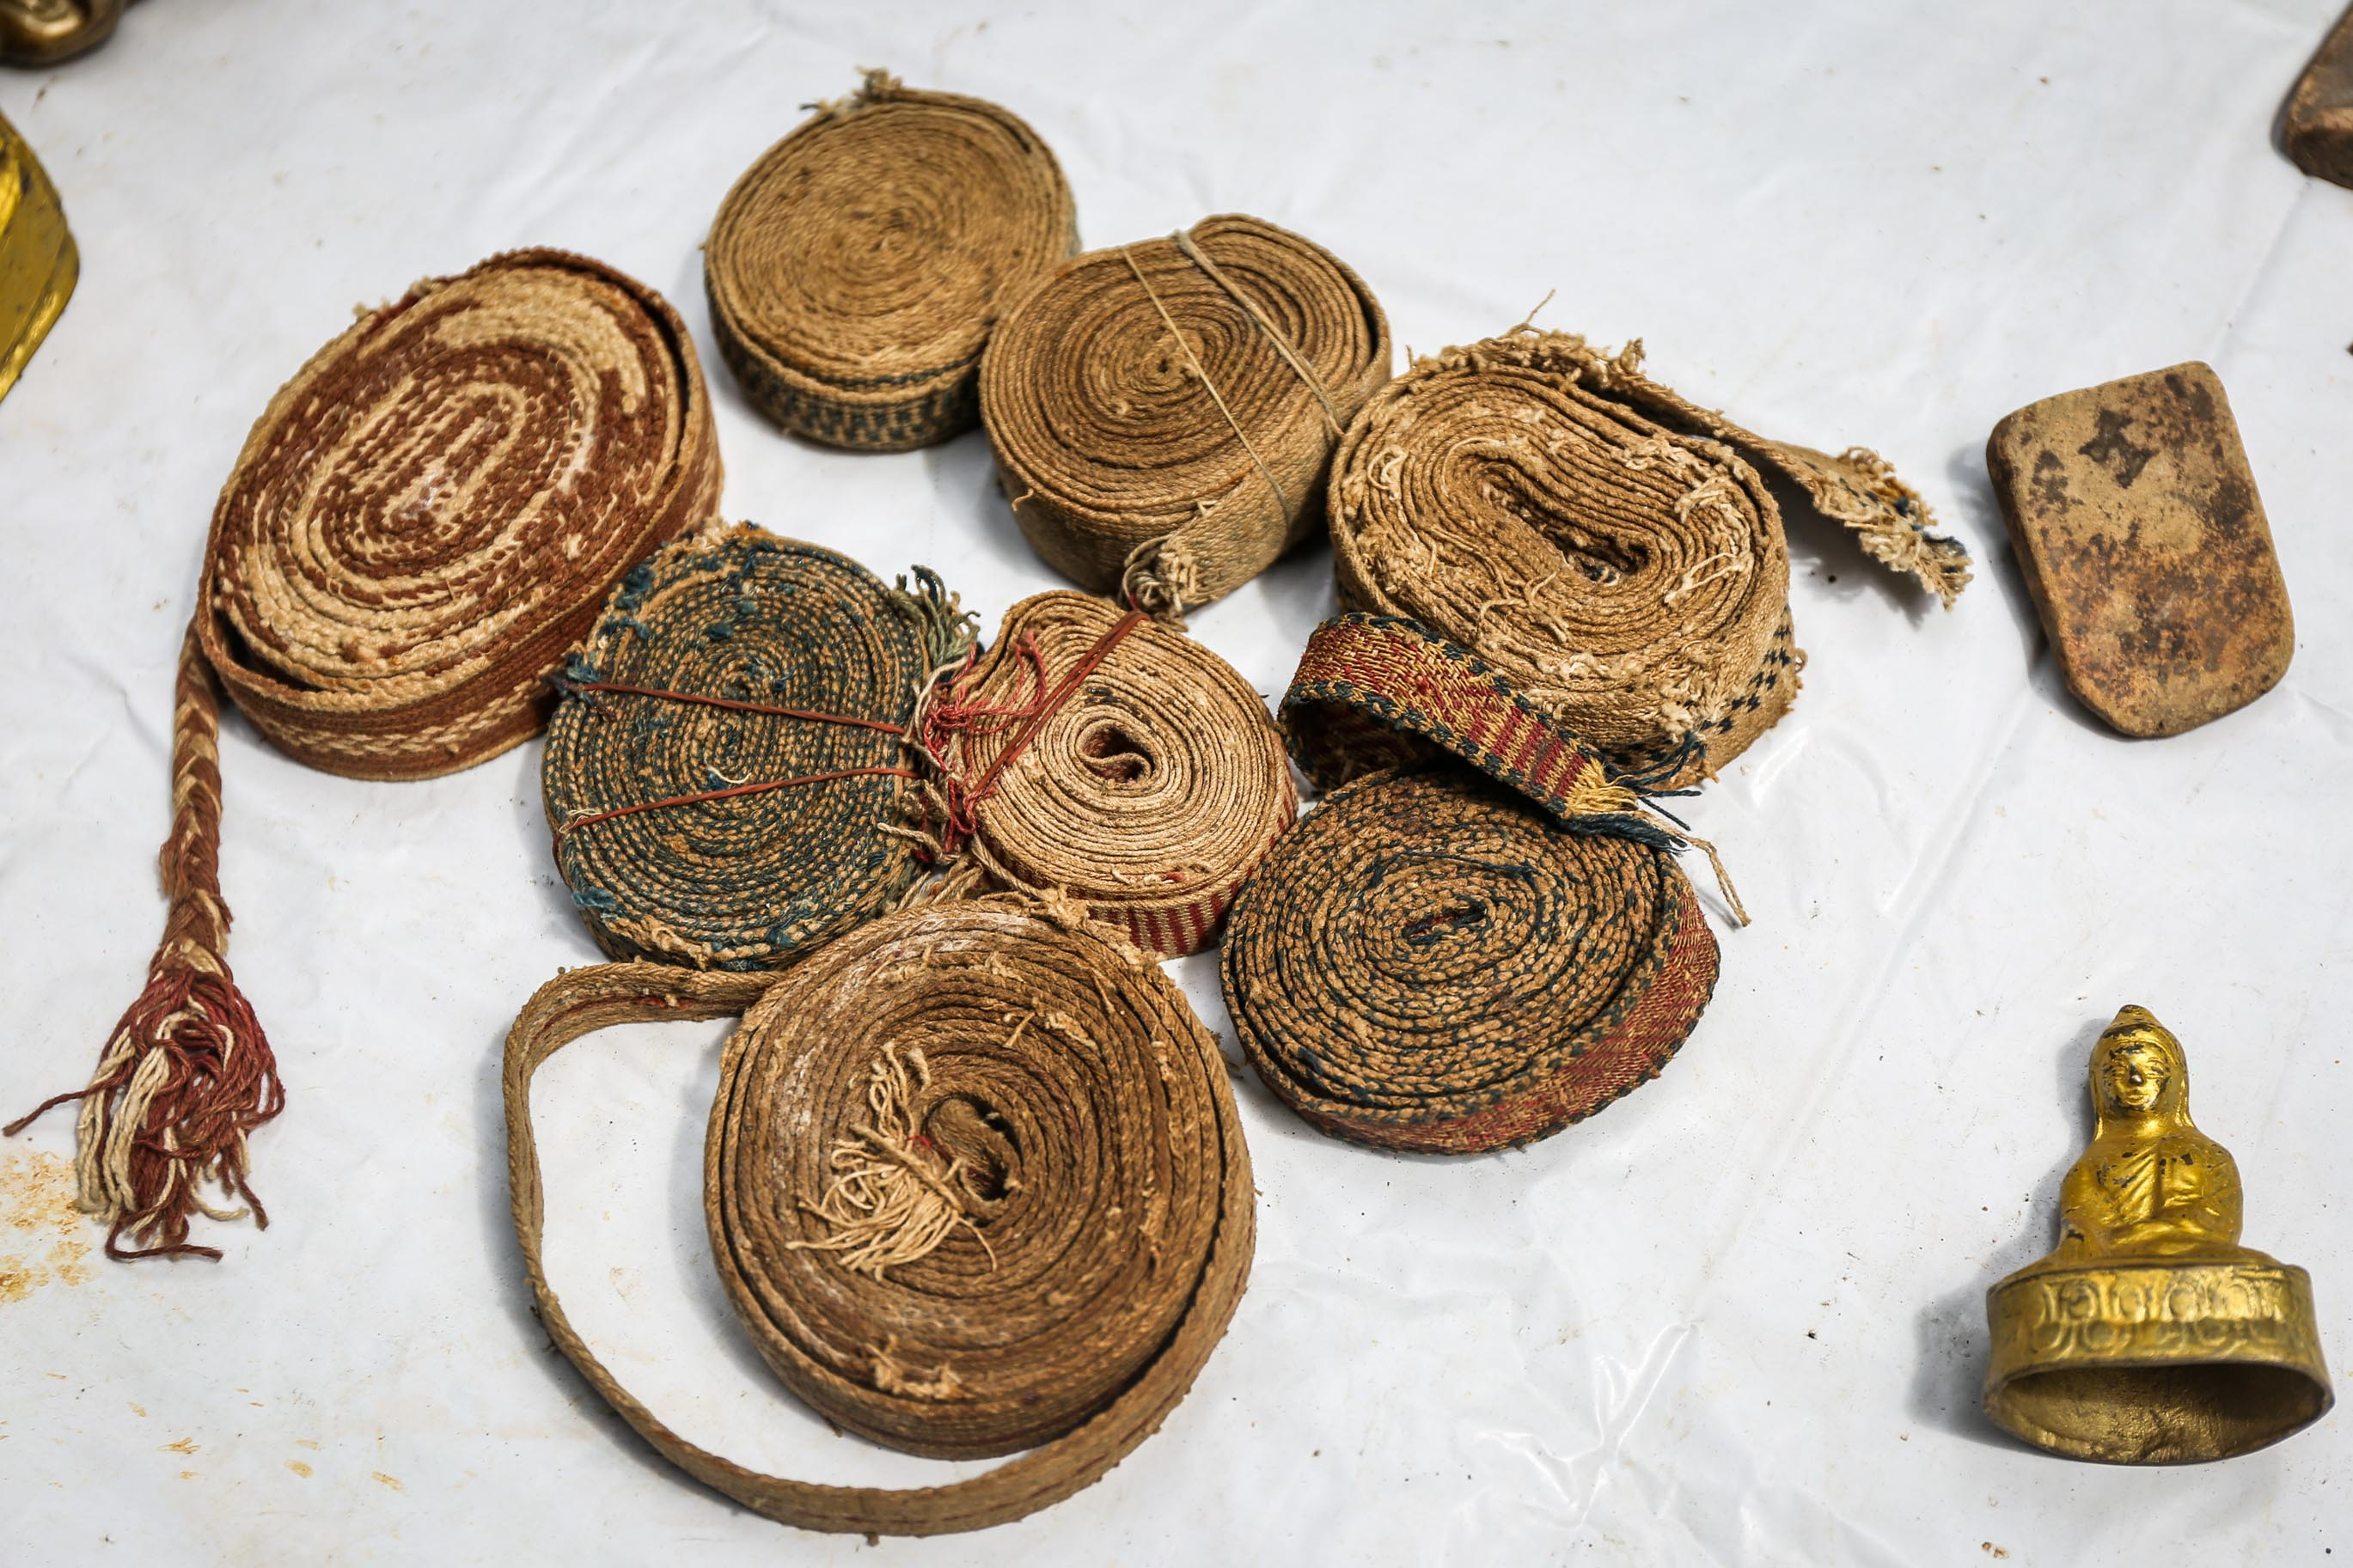 Traditional Burmese Manuscript Belts (Sazigyo) Yangon Myanmar (Burma) Asia Antiques Buying Tours with The Antiques Diva